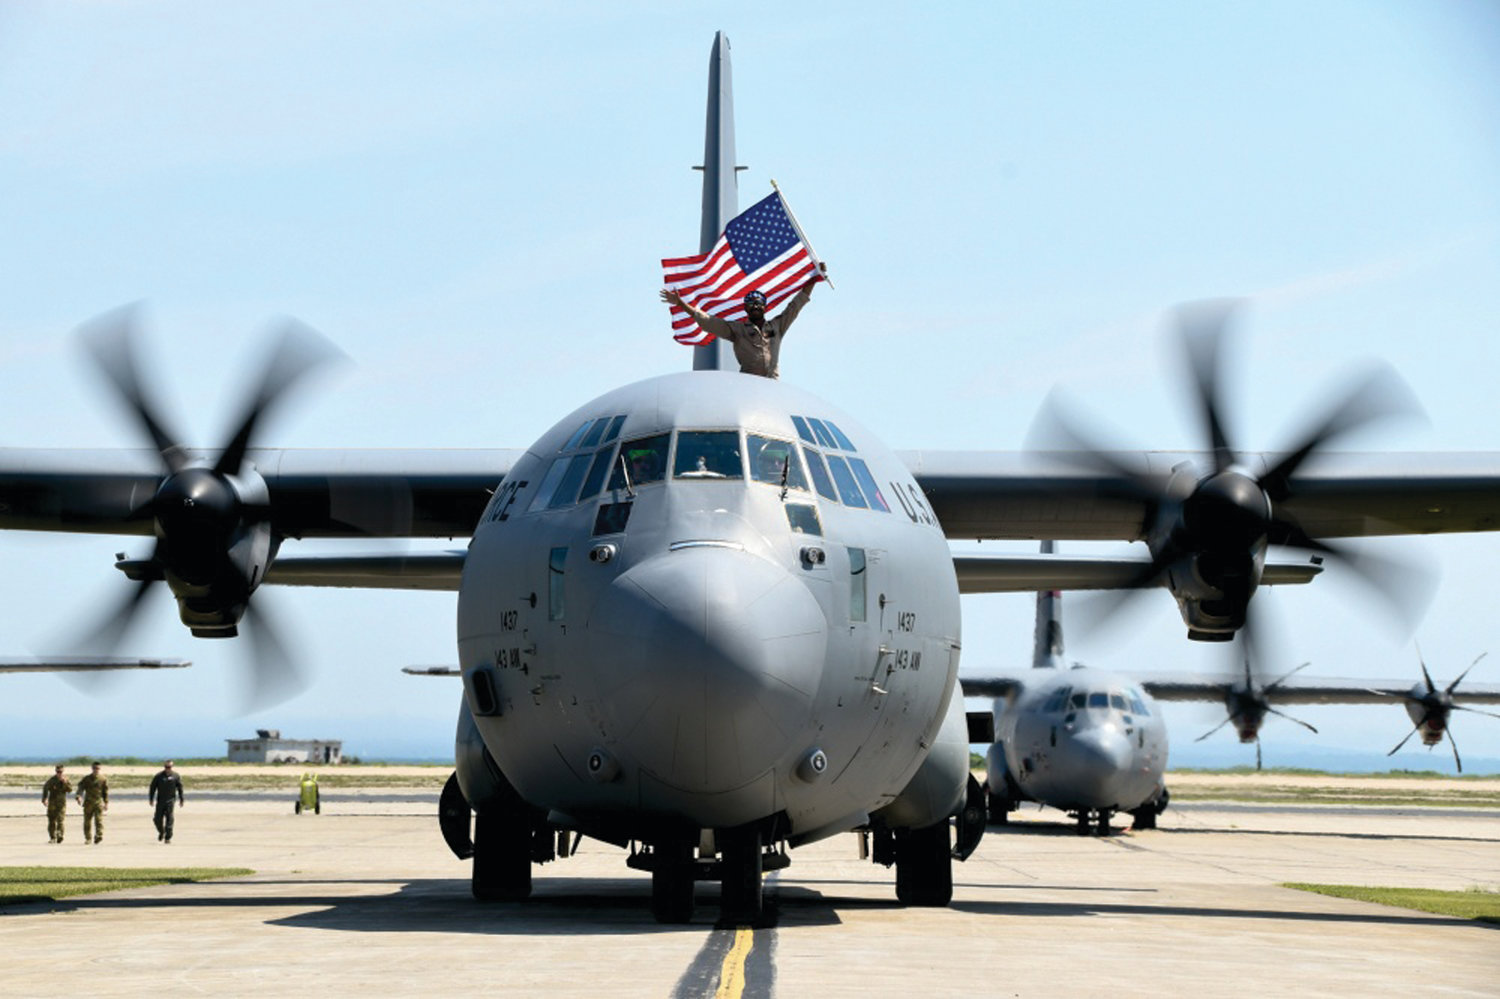 NICE RIDE: An Airman waves from one of the C-310J aircraft during the celebration at Quonset on July 5.